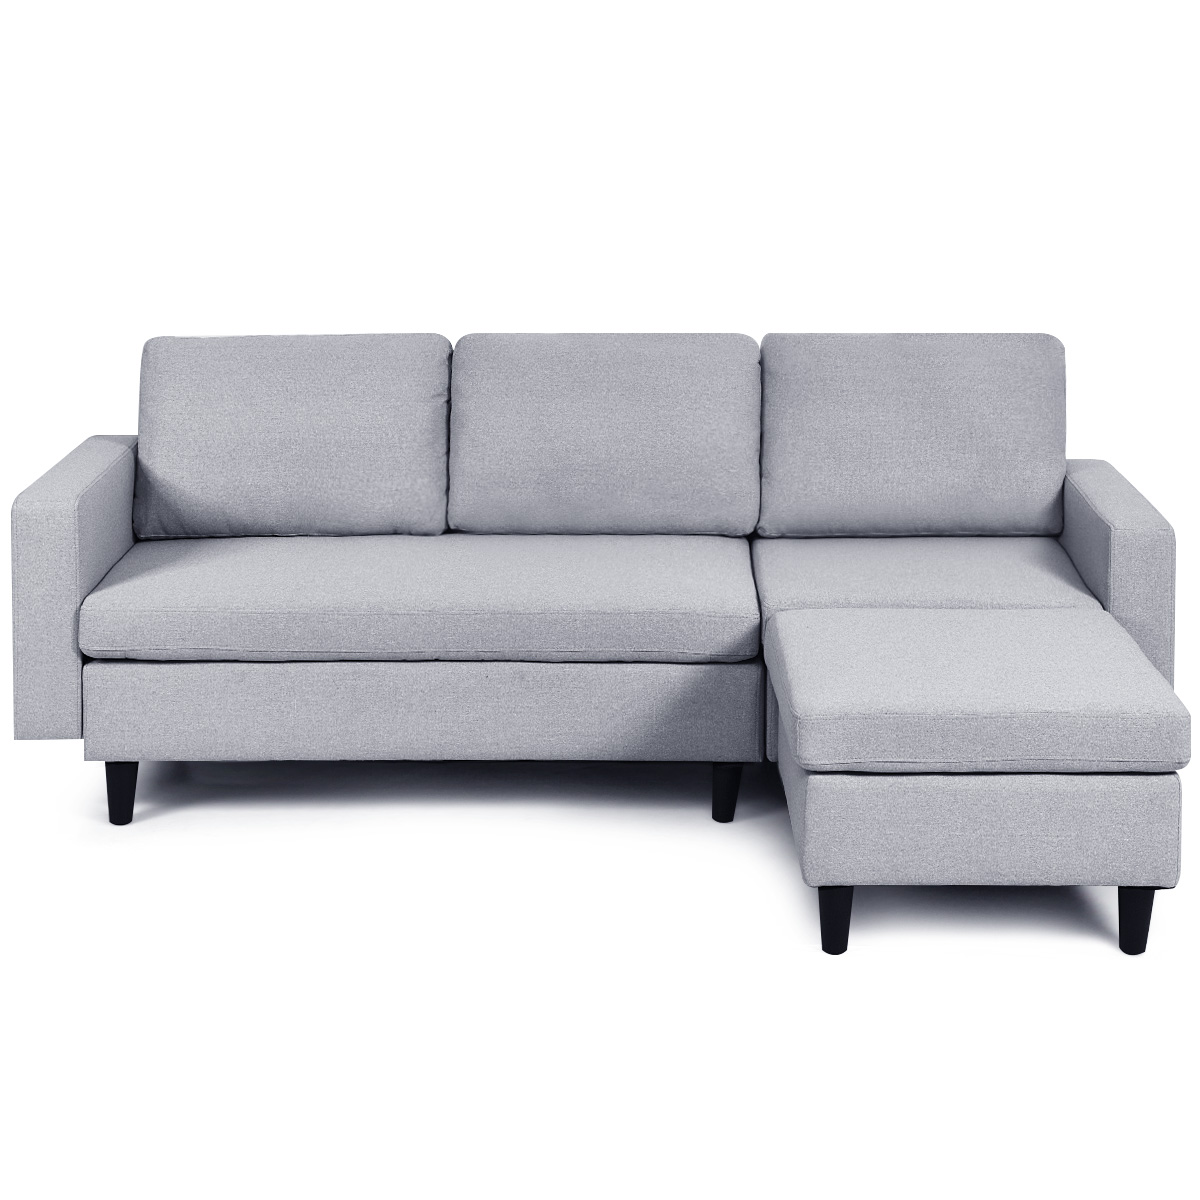 costway convertible sectional sofa couch l shaped couch massage back cushion gray walmart com